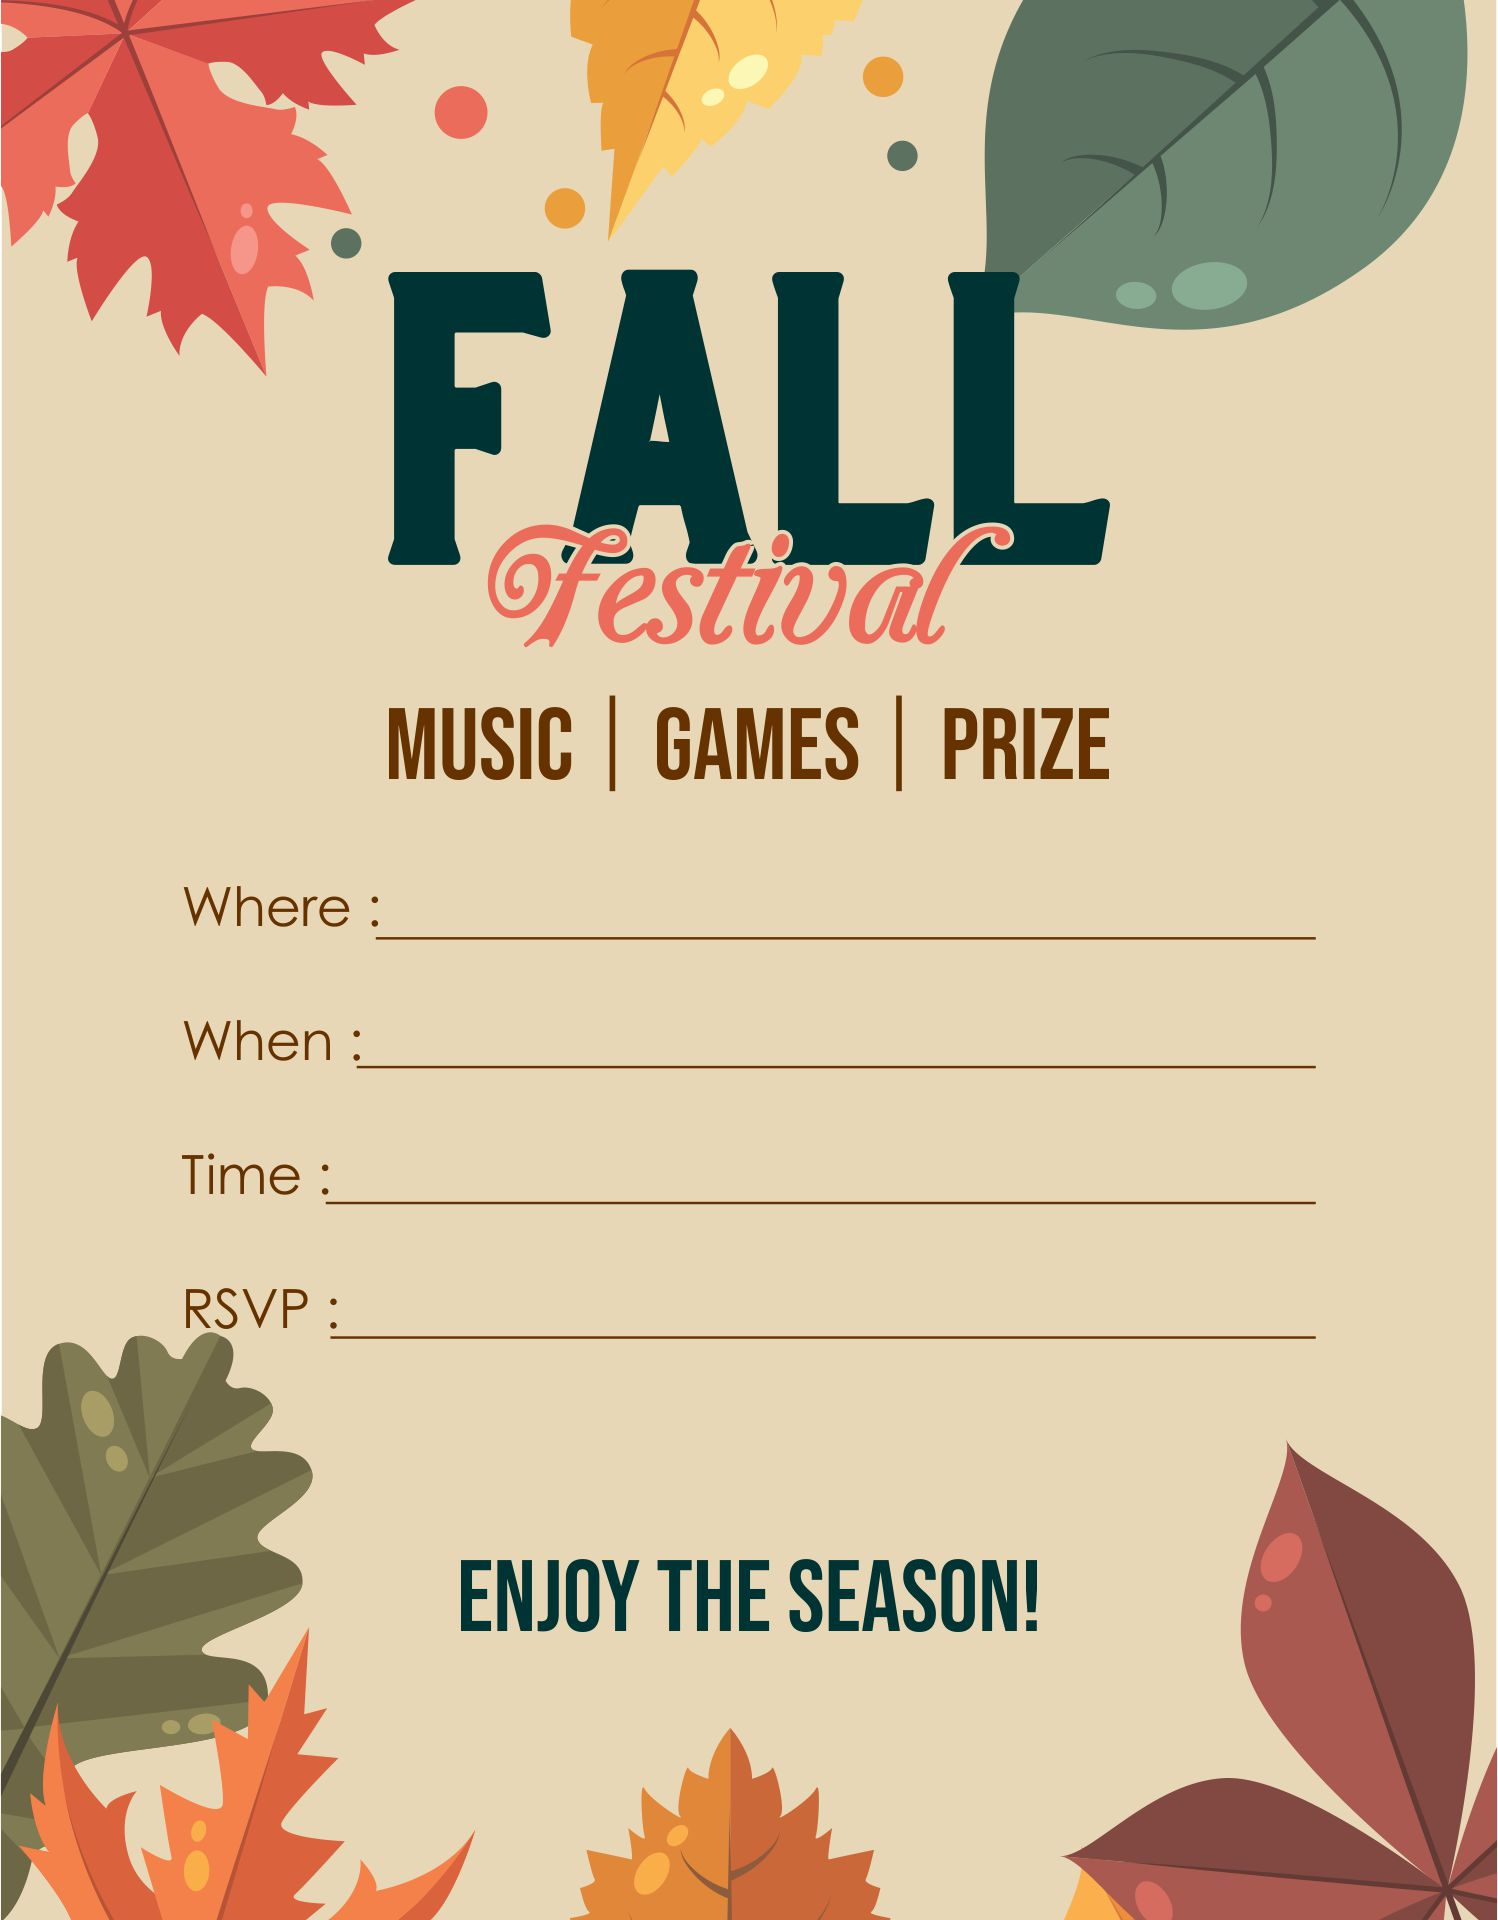 8 Best Images of Free Printable Fall Flyer Templates - Fall ...